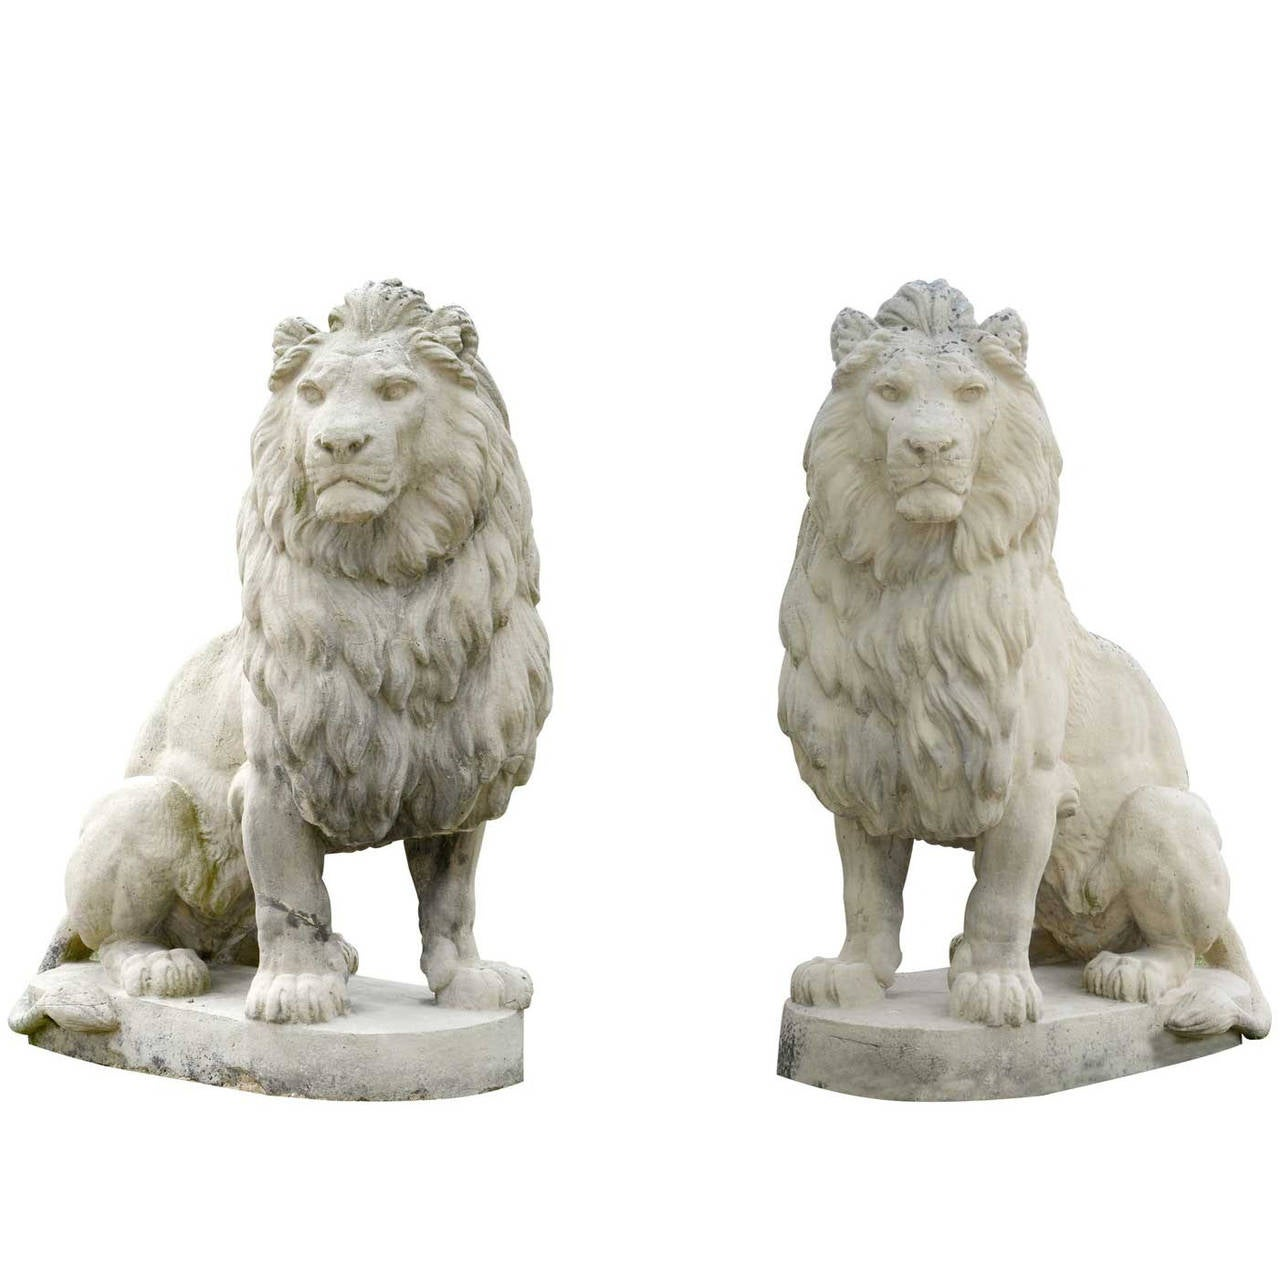 Pair Of Composite Stone Lion Statues 20th Century At 1stdibs